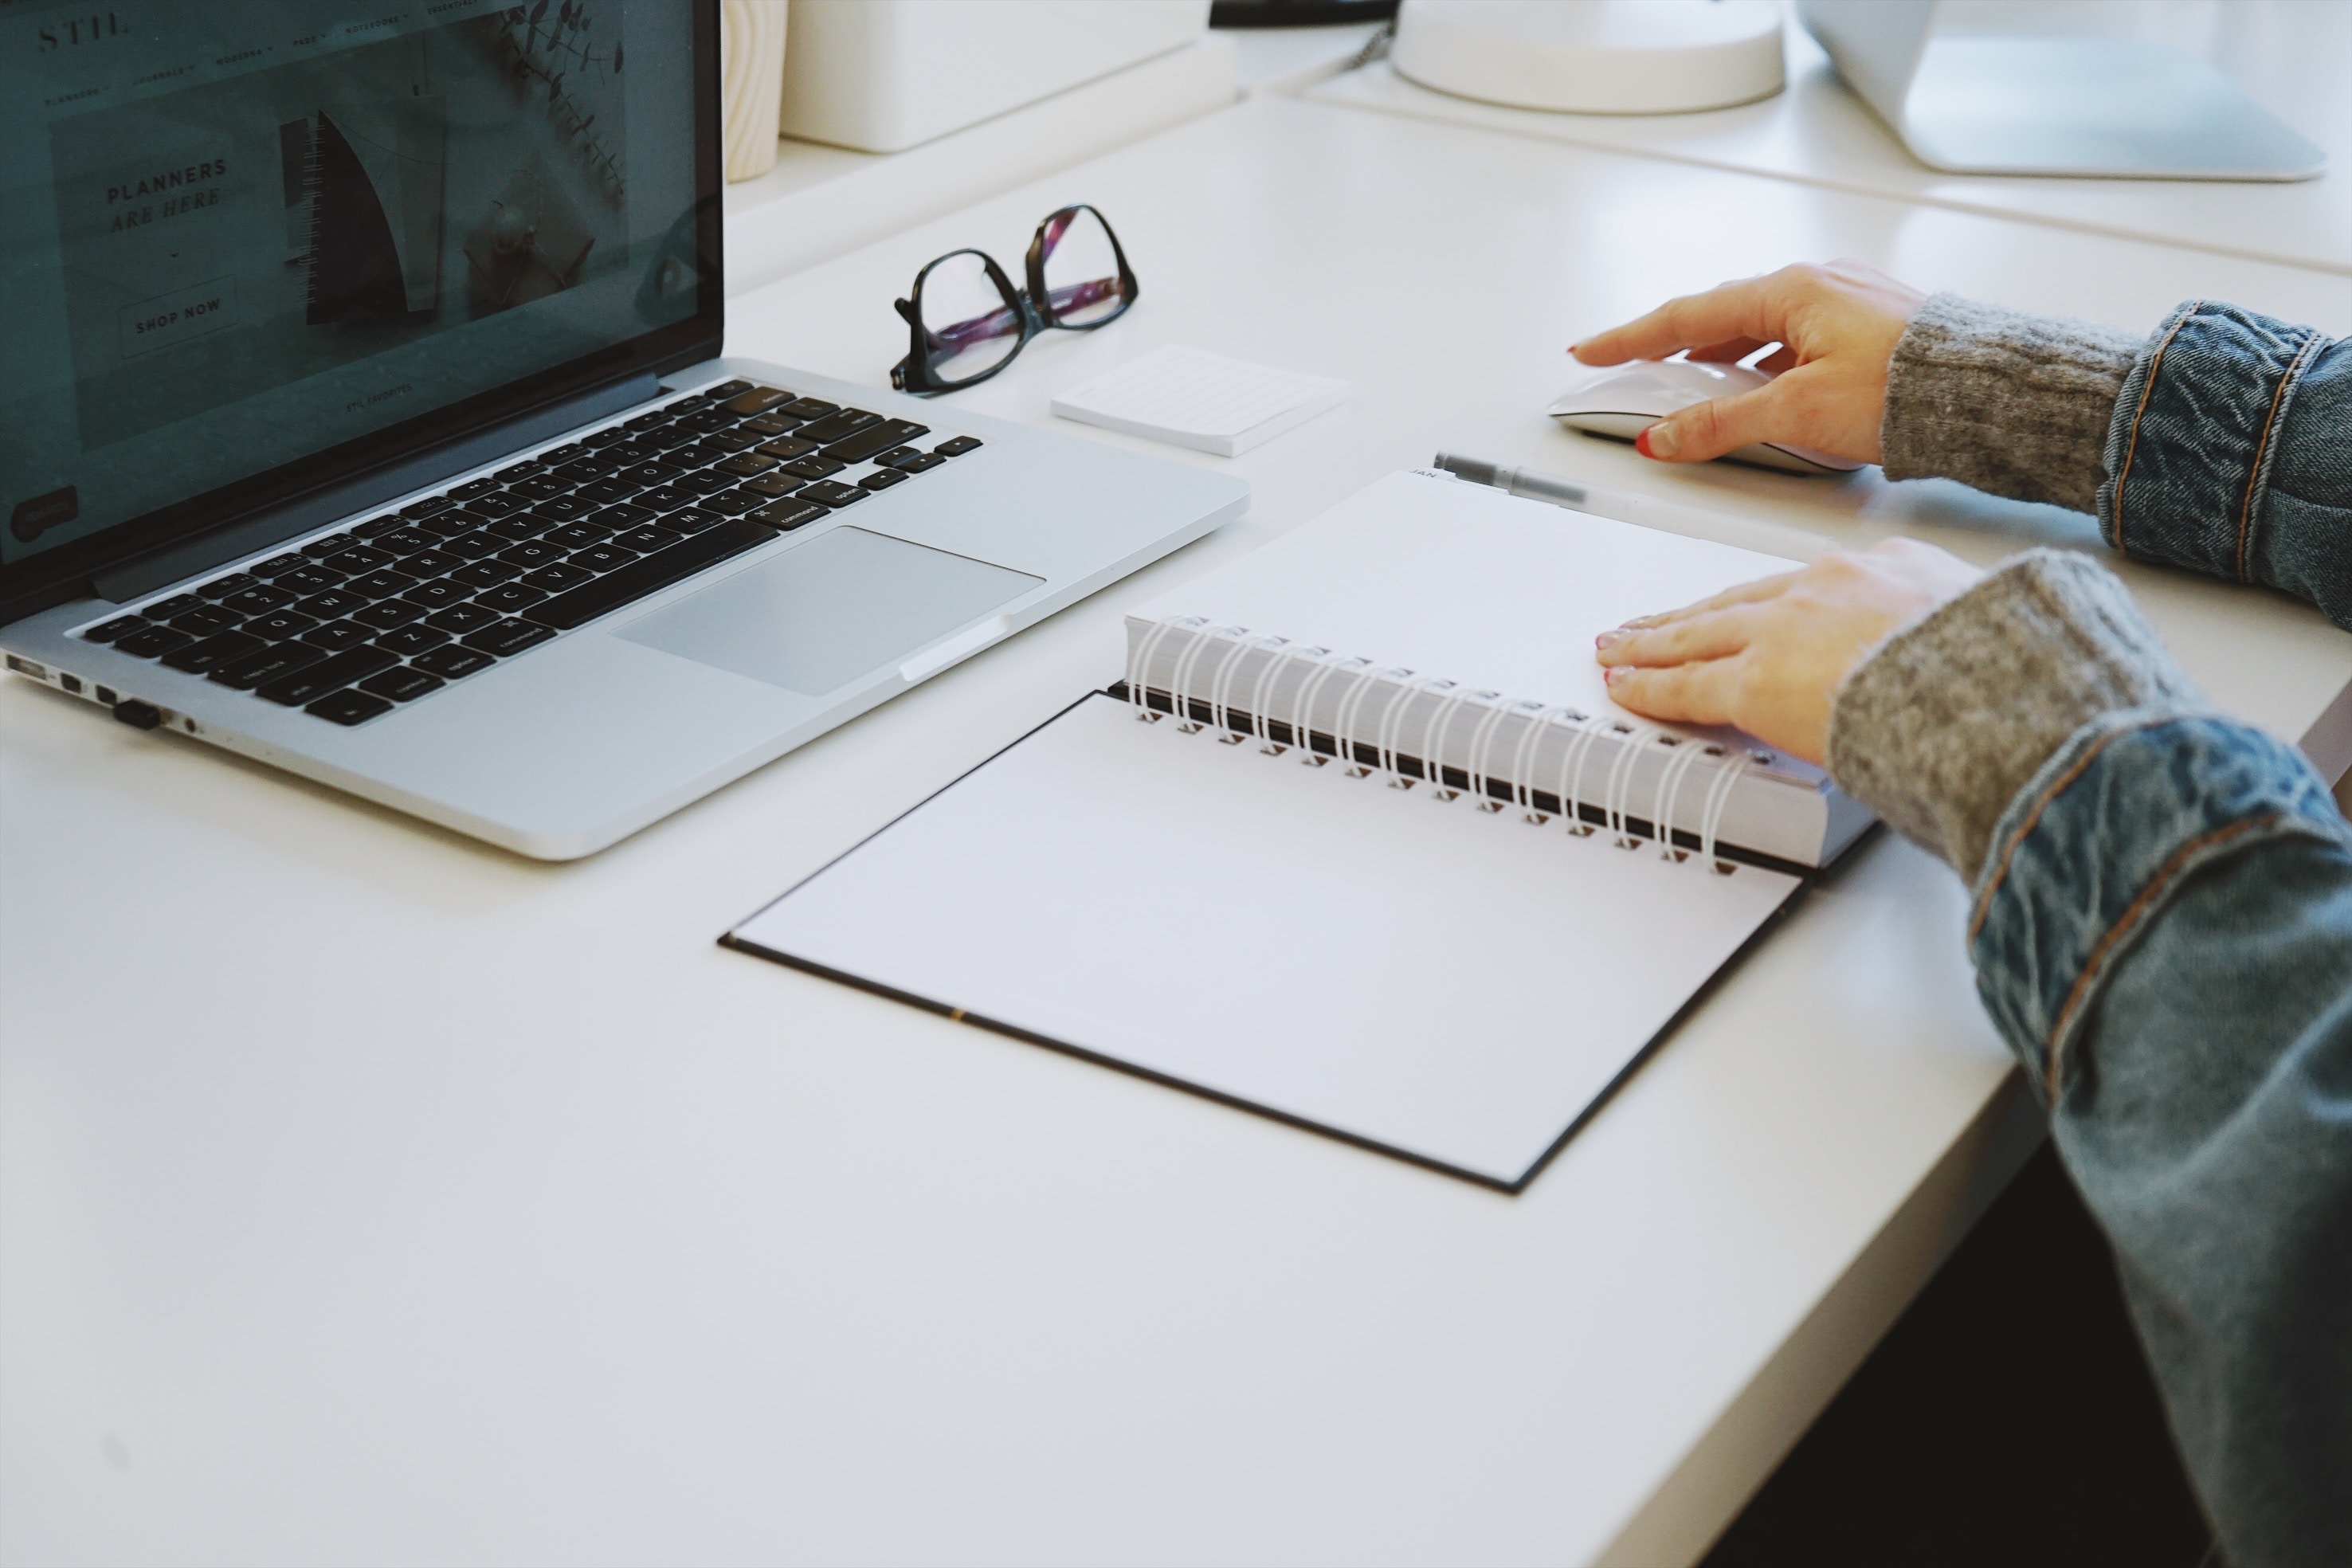 A woman sat at a white desk with an open notebook/planner using a macbook pro and an apple mouse. On the desk there is a small white pad and a pair of dark rimmed glasses